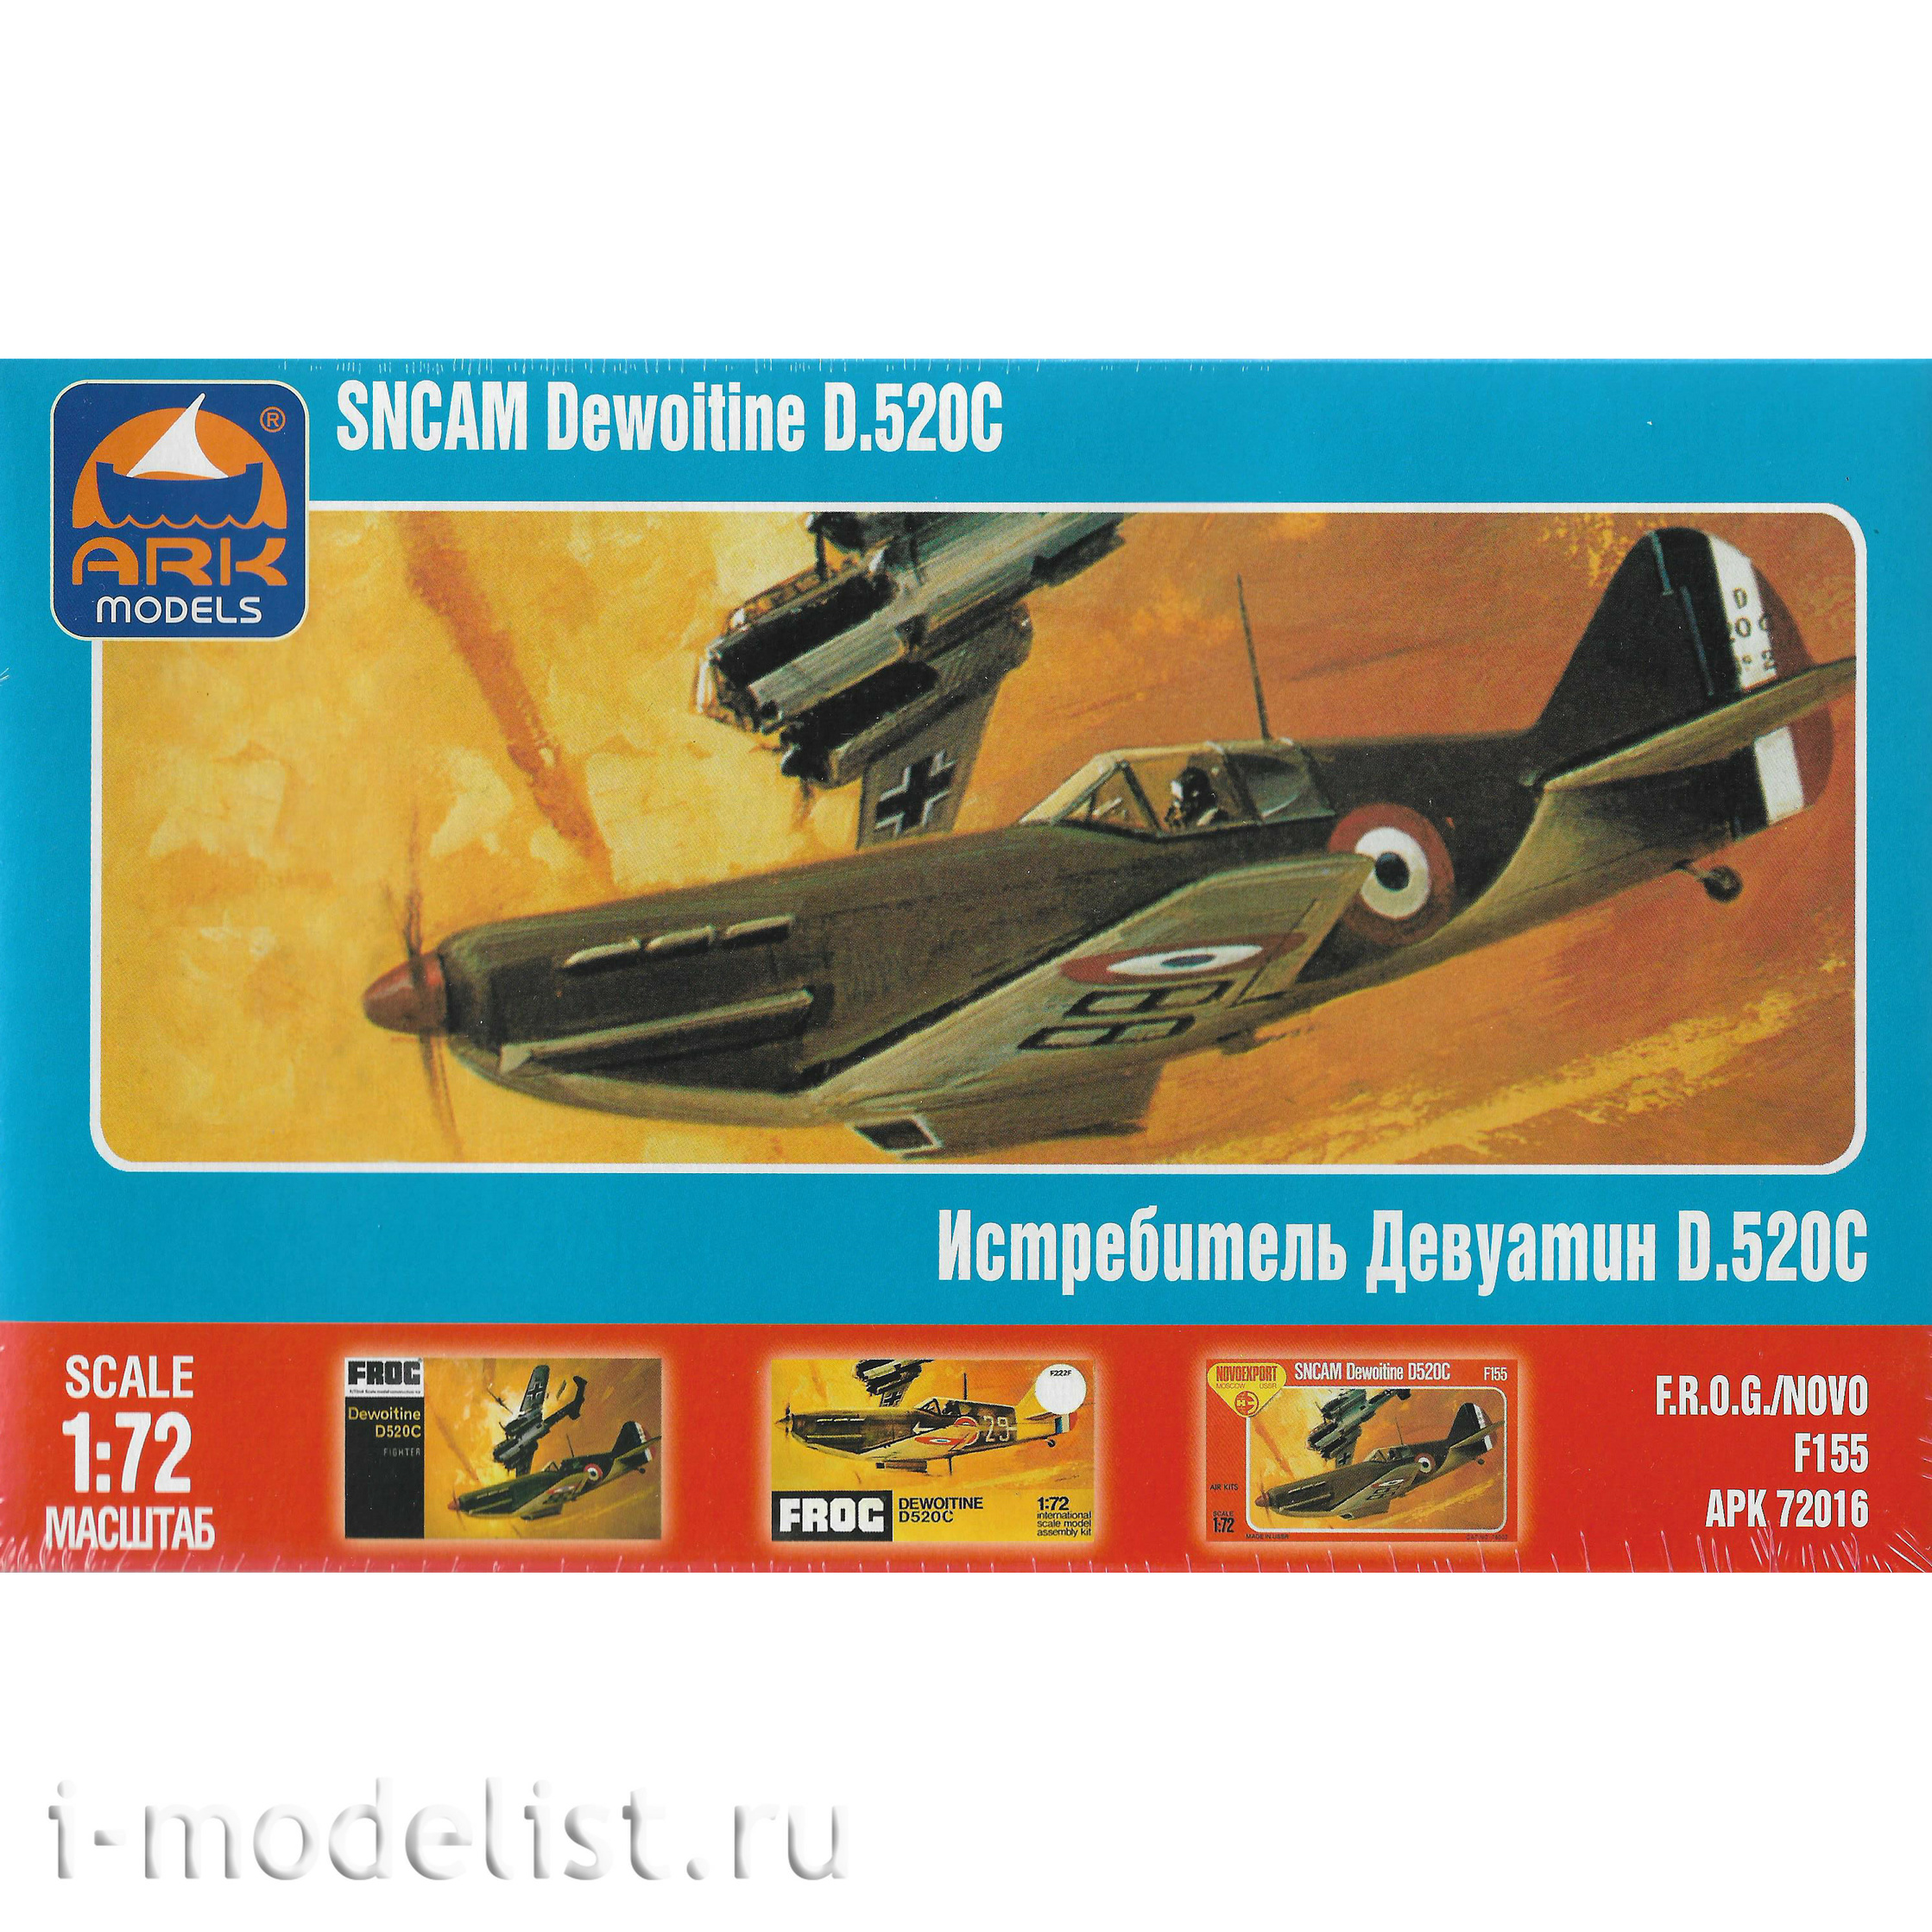 72016 ARK models 1/72 French fighter, the D. 520 Dewoitine